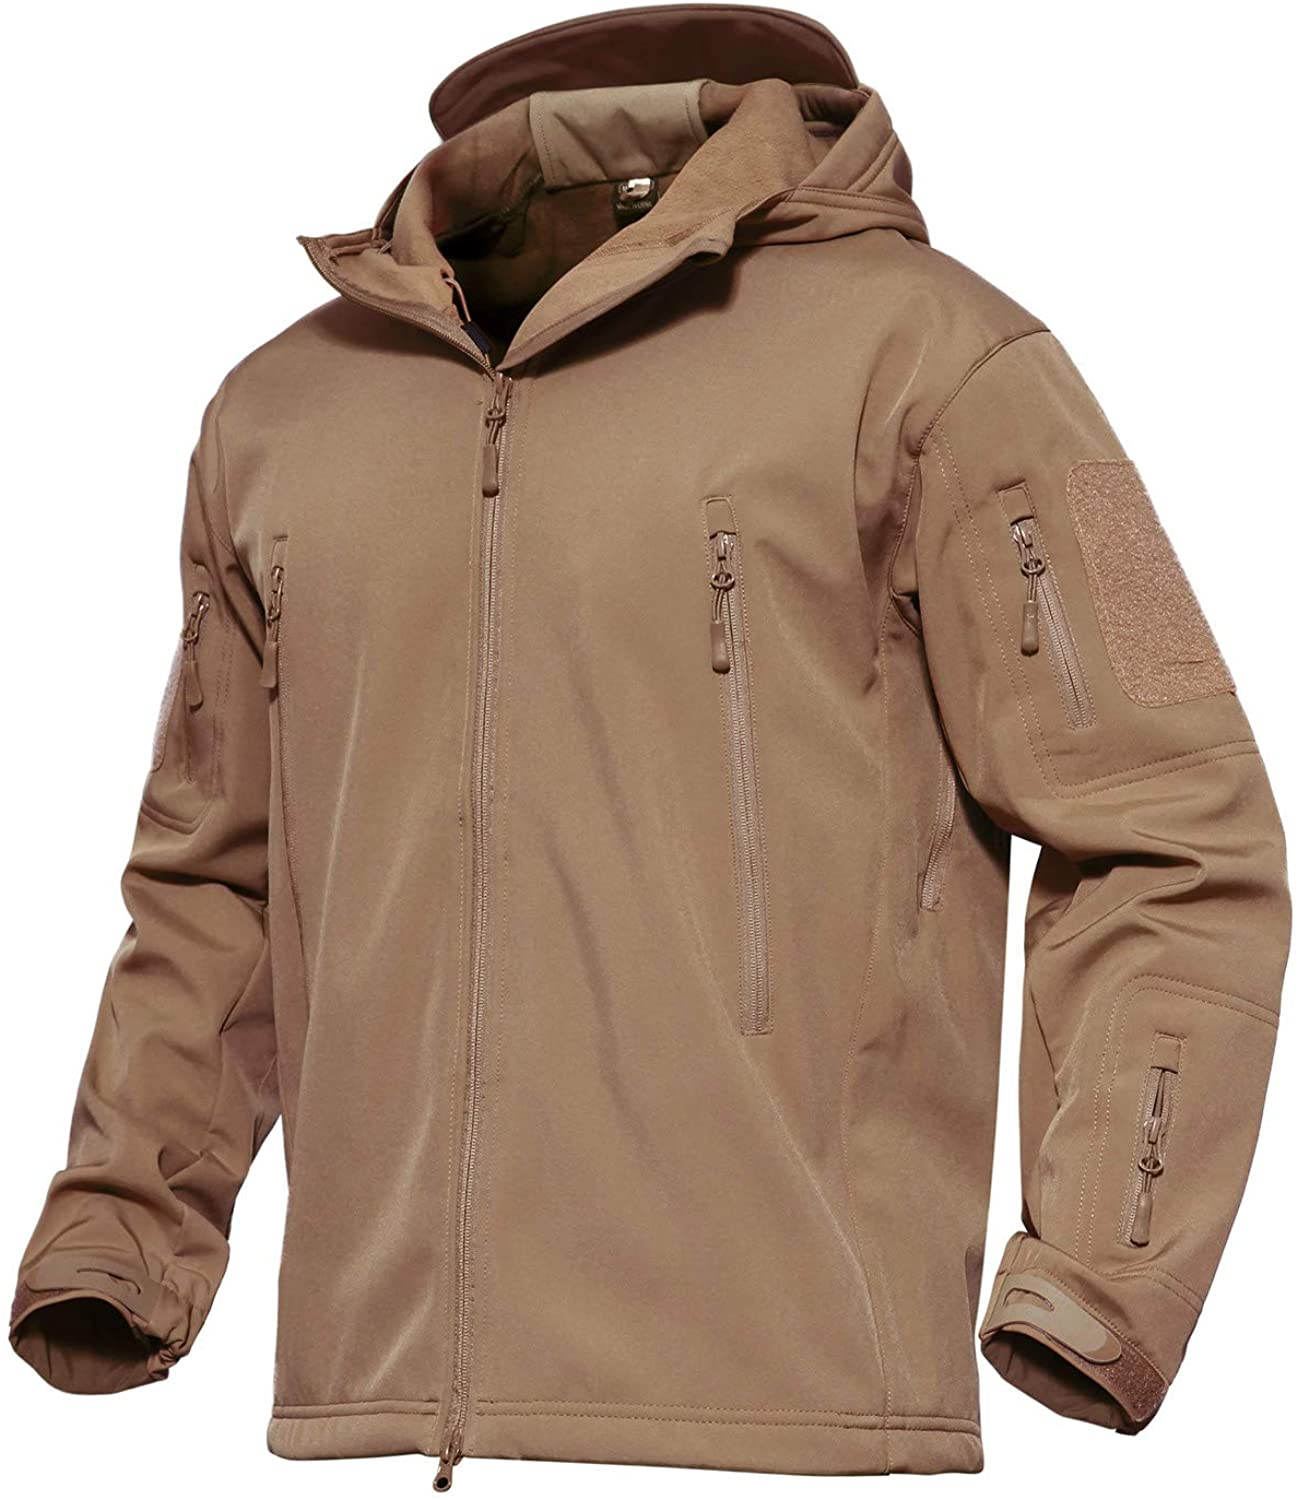 MAGCOMSEN Men's Hooded Tactical Jacket Water Resistant Soft Shell Outwear Coat